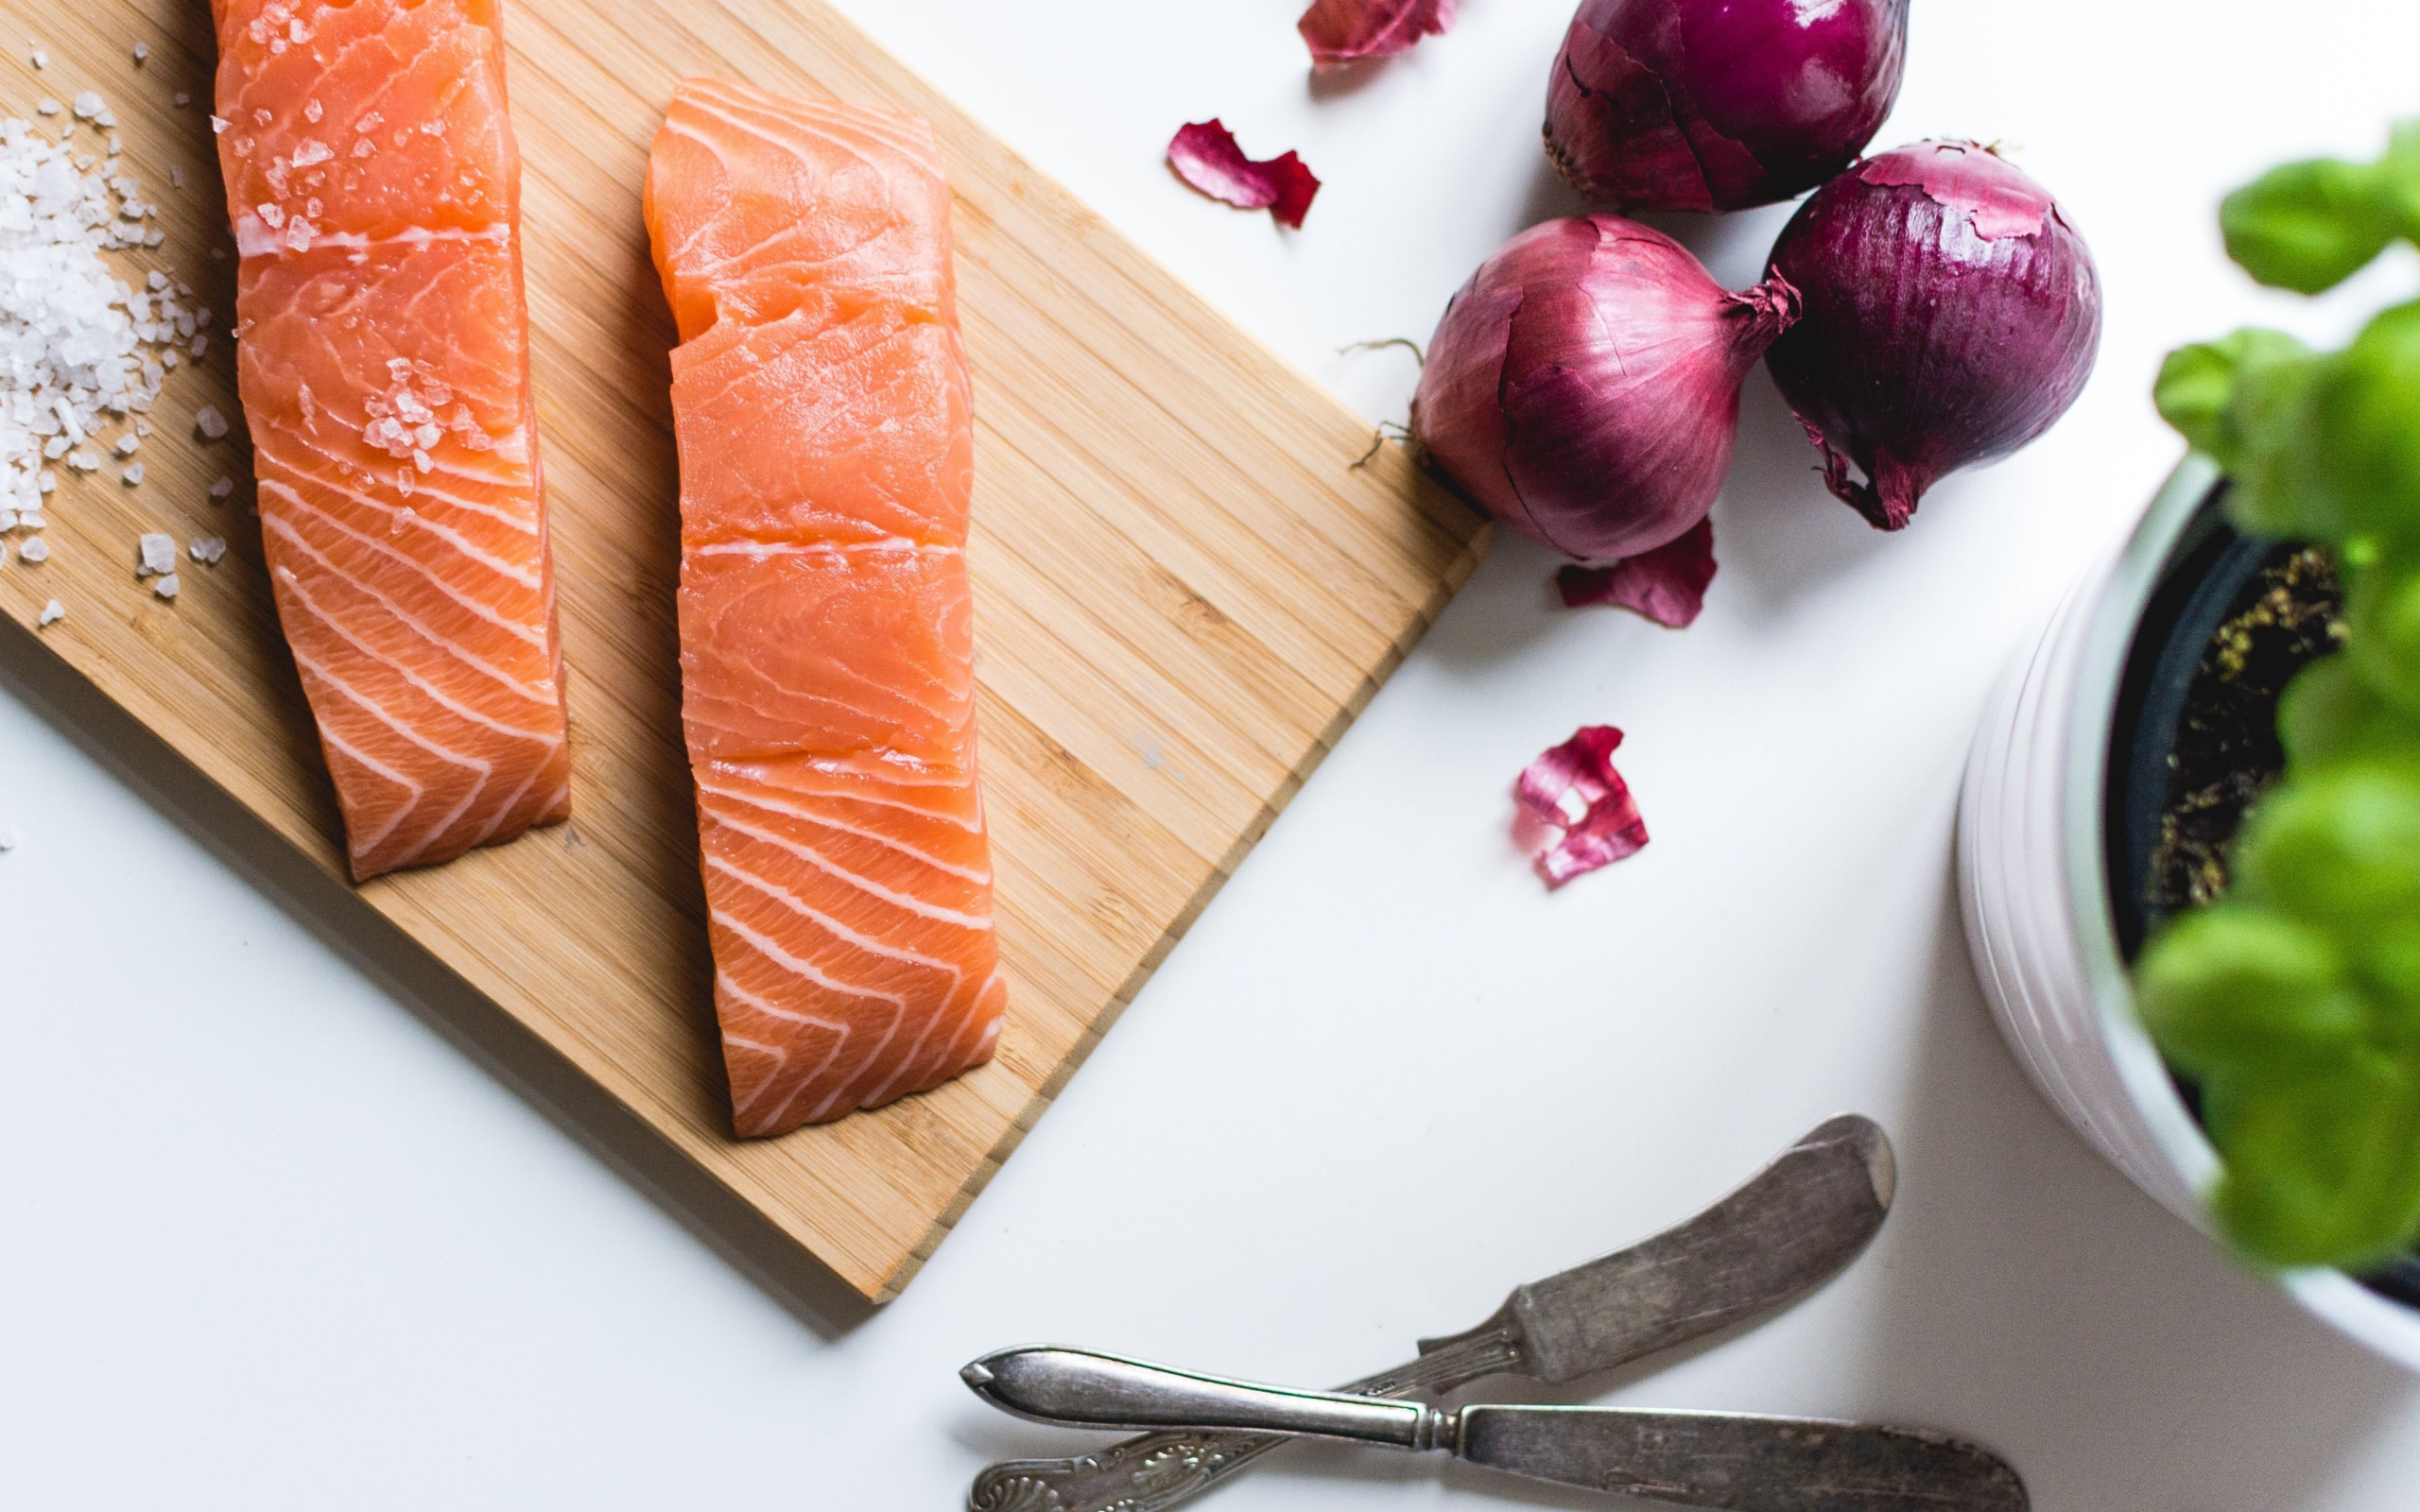 Salmon fillets wallpaper 2560x1600